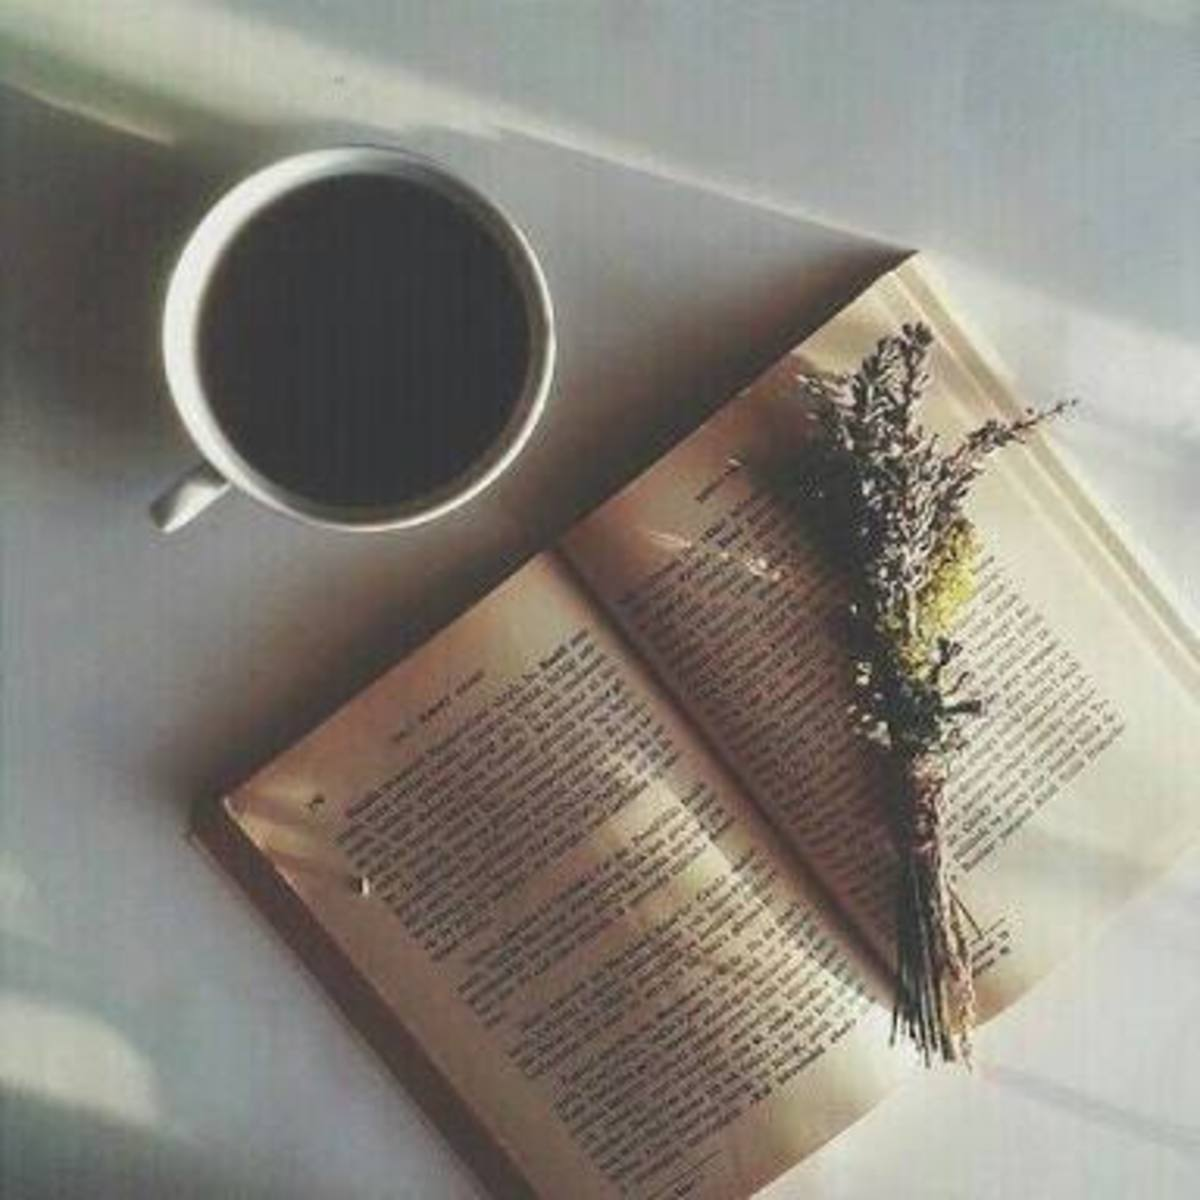 Books and a Coffee